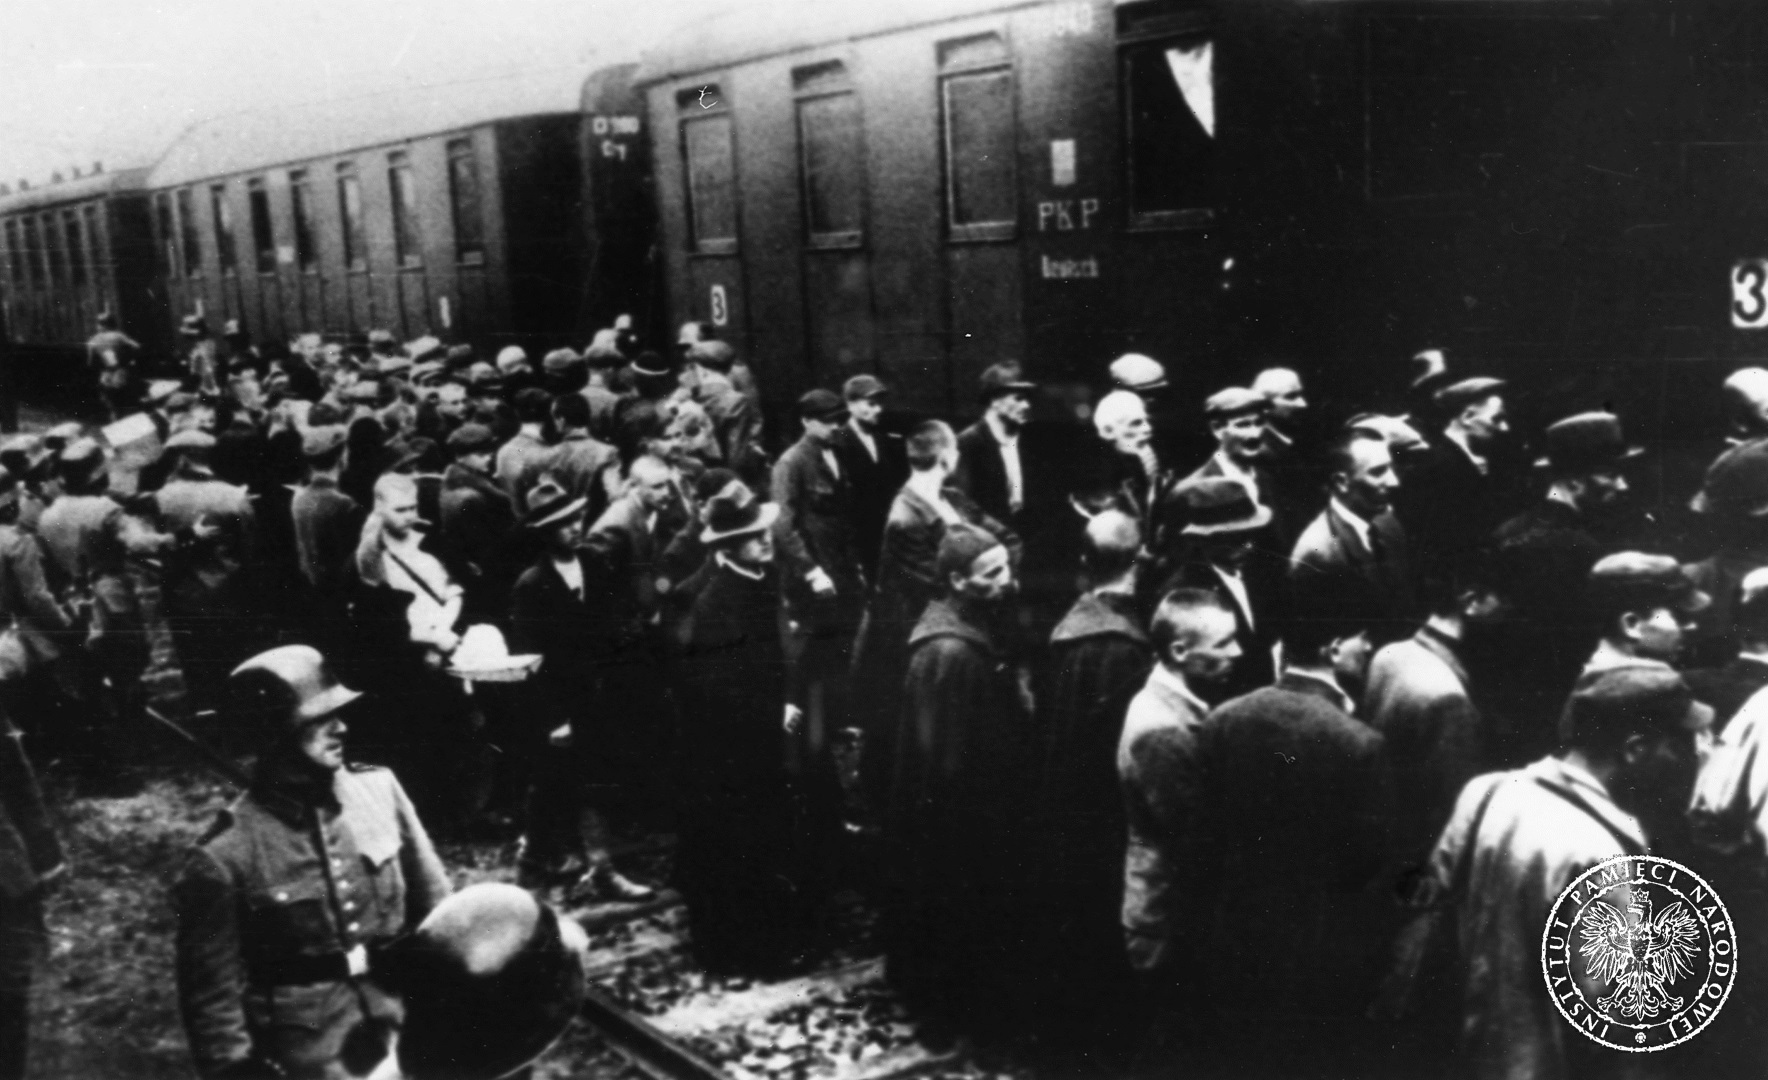 Prisoners of the first transport to Auschwitz at Tarnów railway station, 14 June 1940